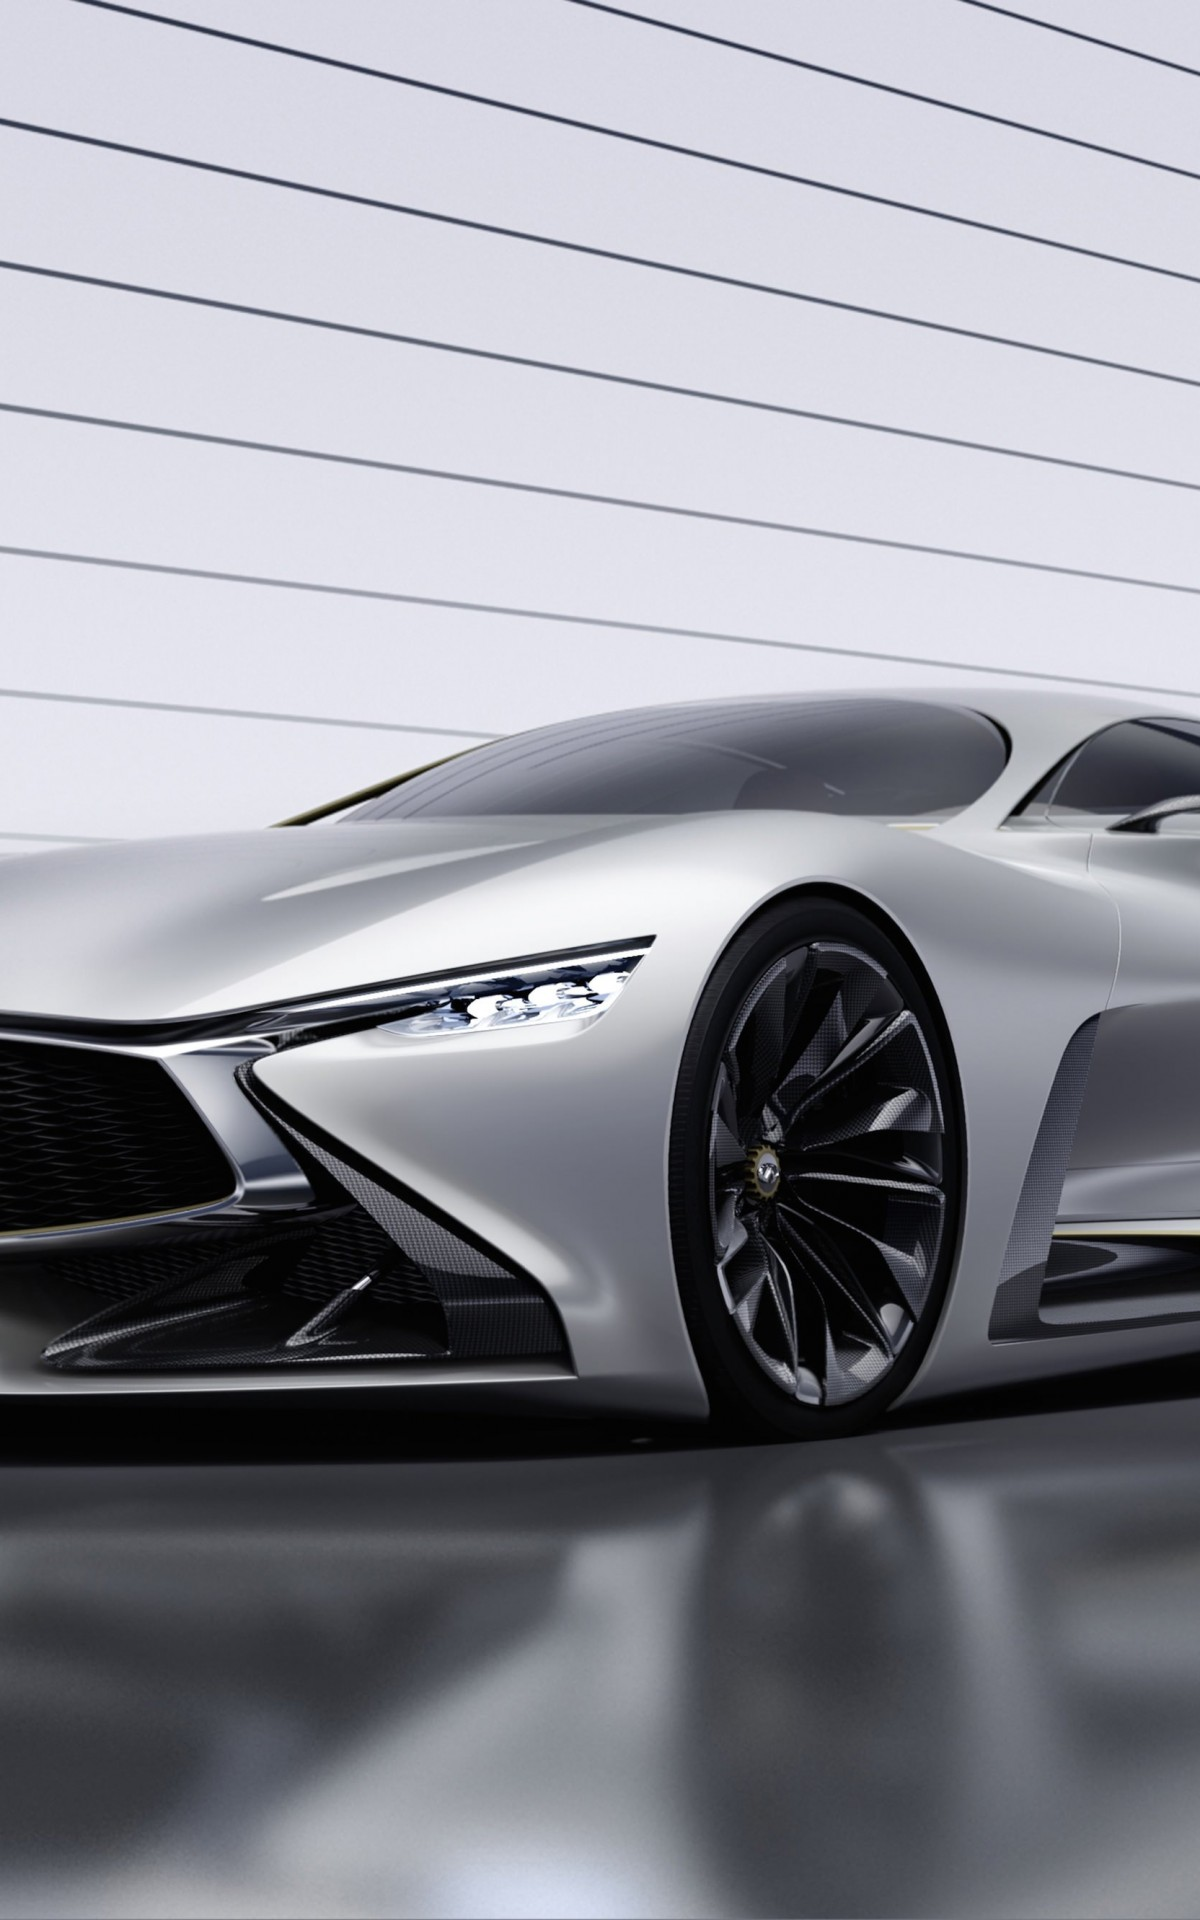 Infiniti Vision GT Concept Wallpaper for Amazon Kindle Fire HDX